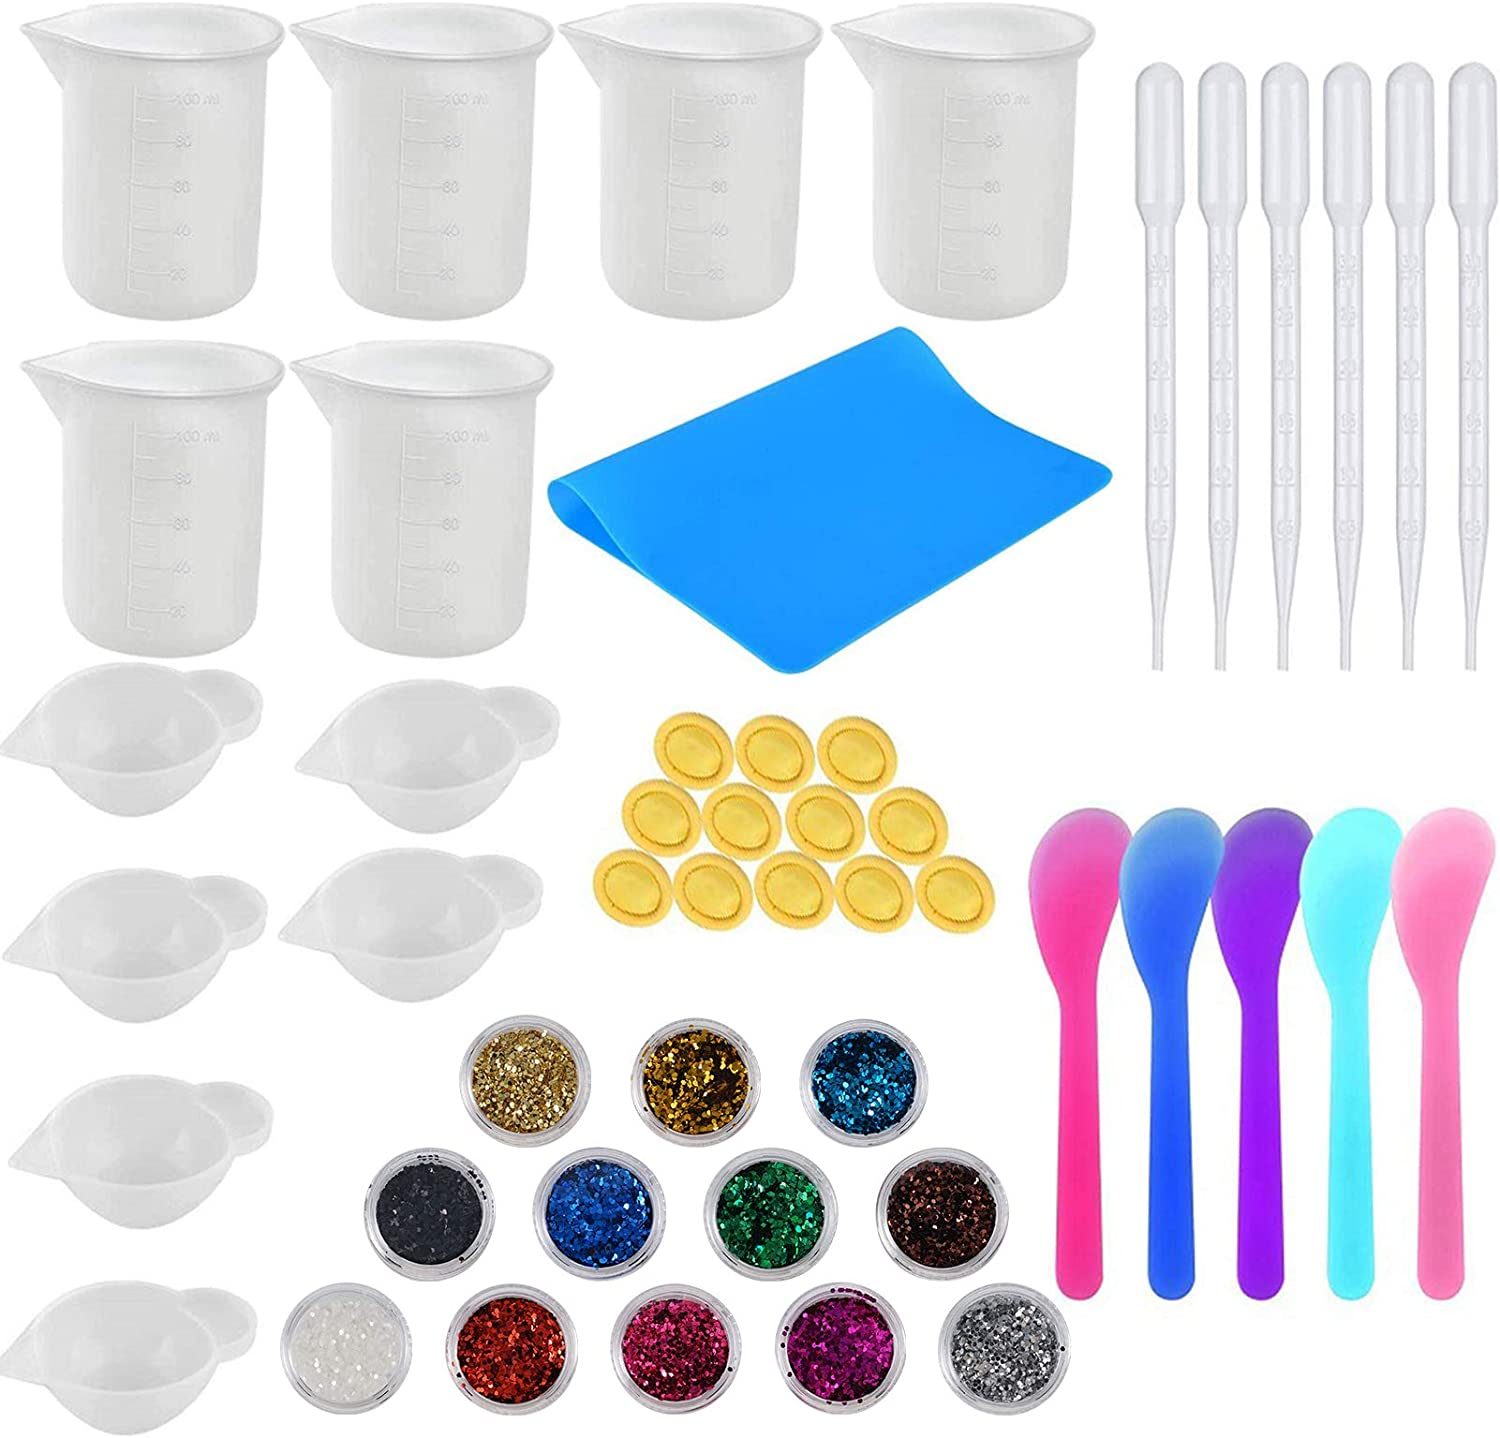 Superior OKAYC Silicone Resin Measuring Max 69% OFF Cups Tool Mea Kit 100ml